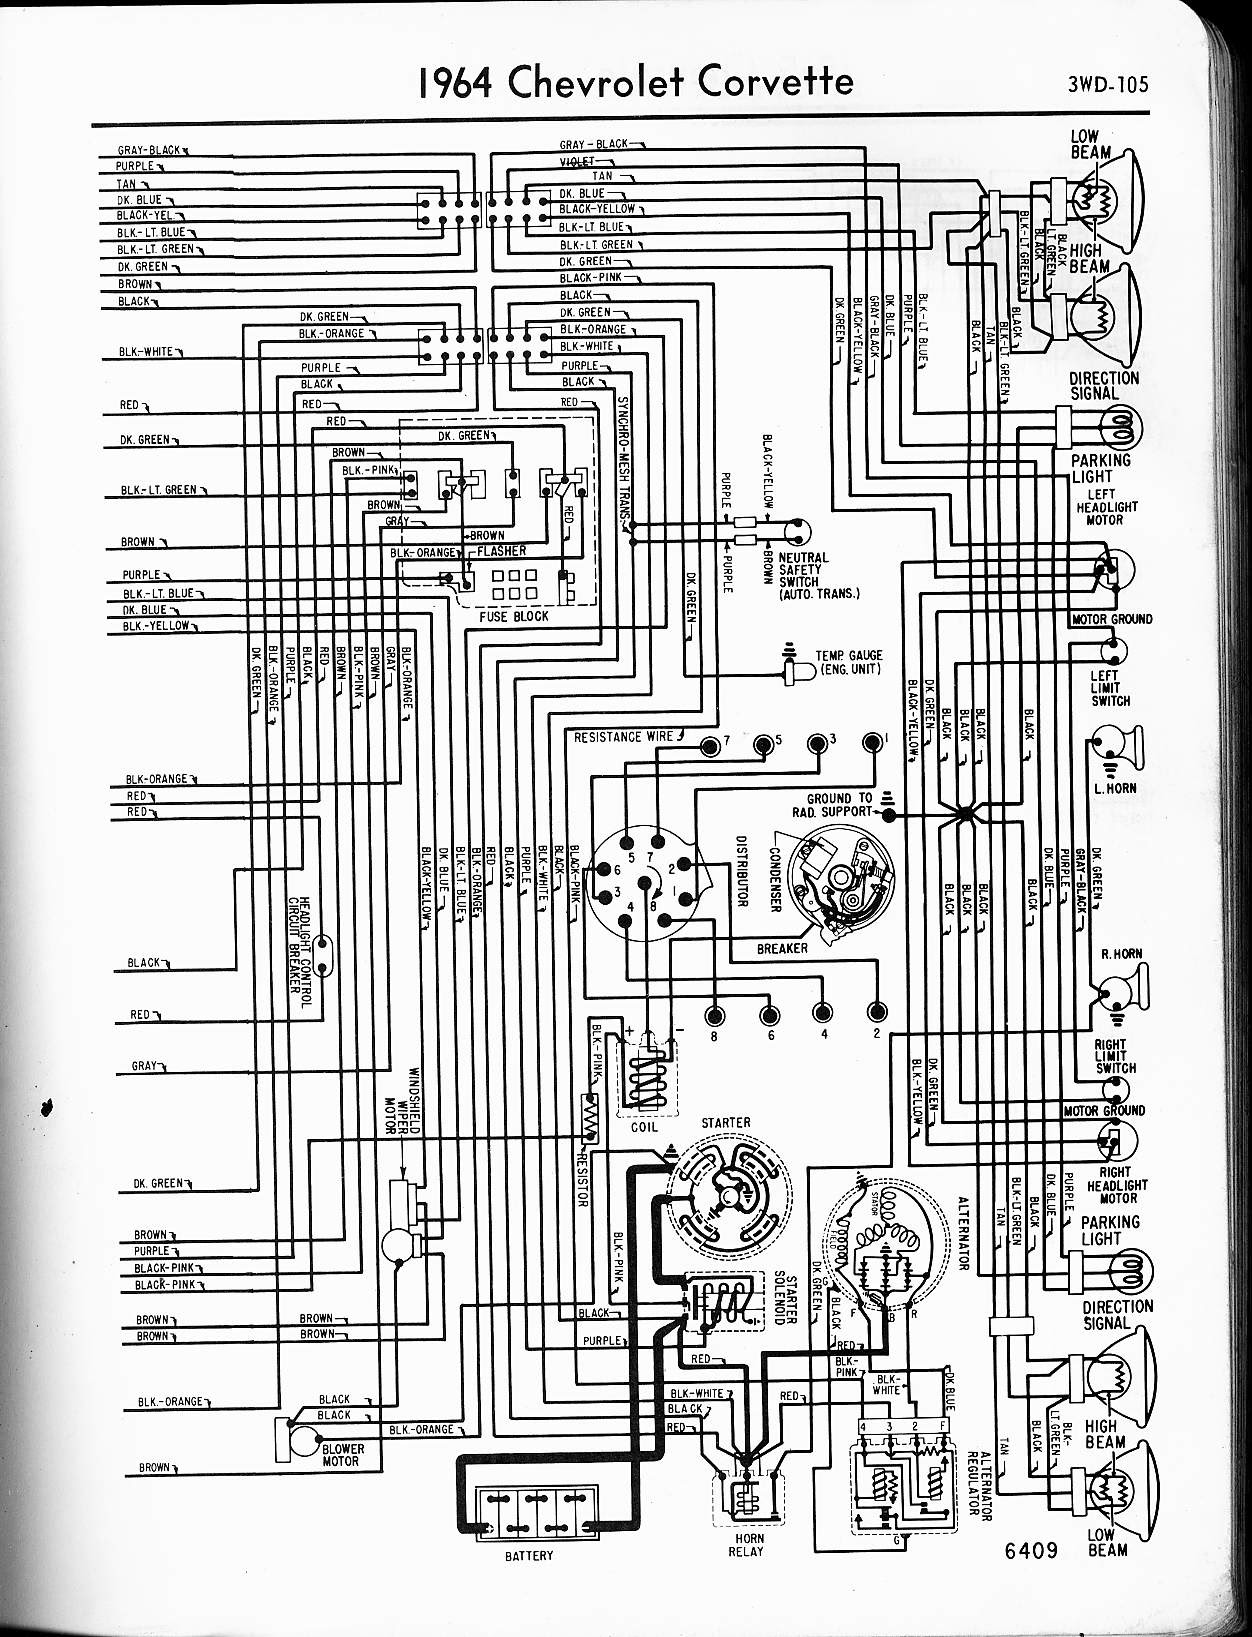 Wiring Diagram 1965 Chevy Impala Wiring Diagram View A View A Zaafran It